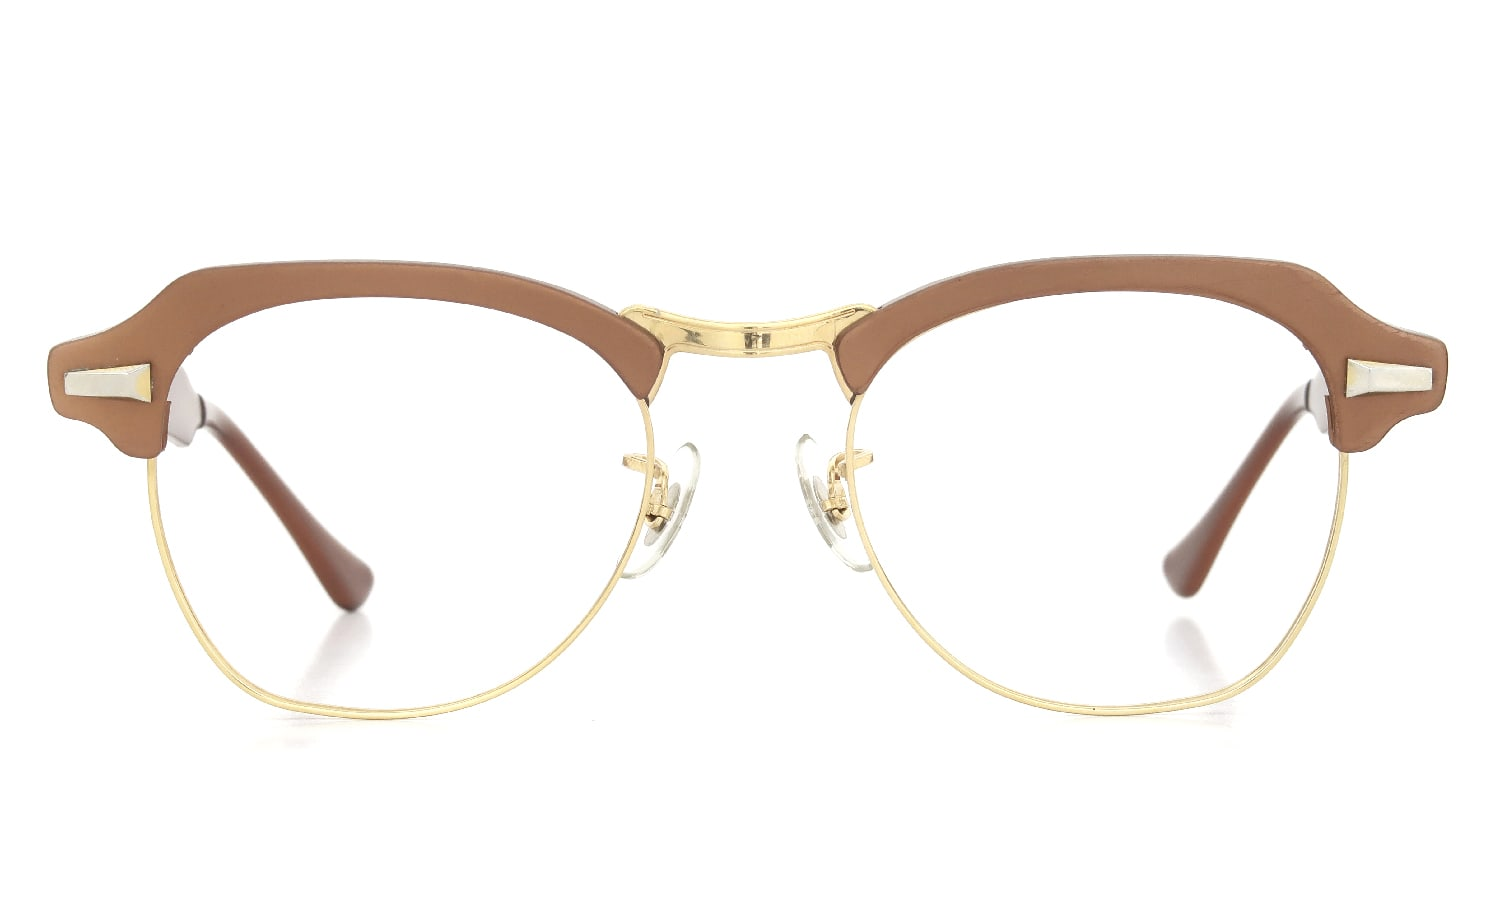 Bausch&Lomb vintage ボシュロム ヴィンテージ メガネ